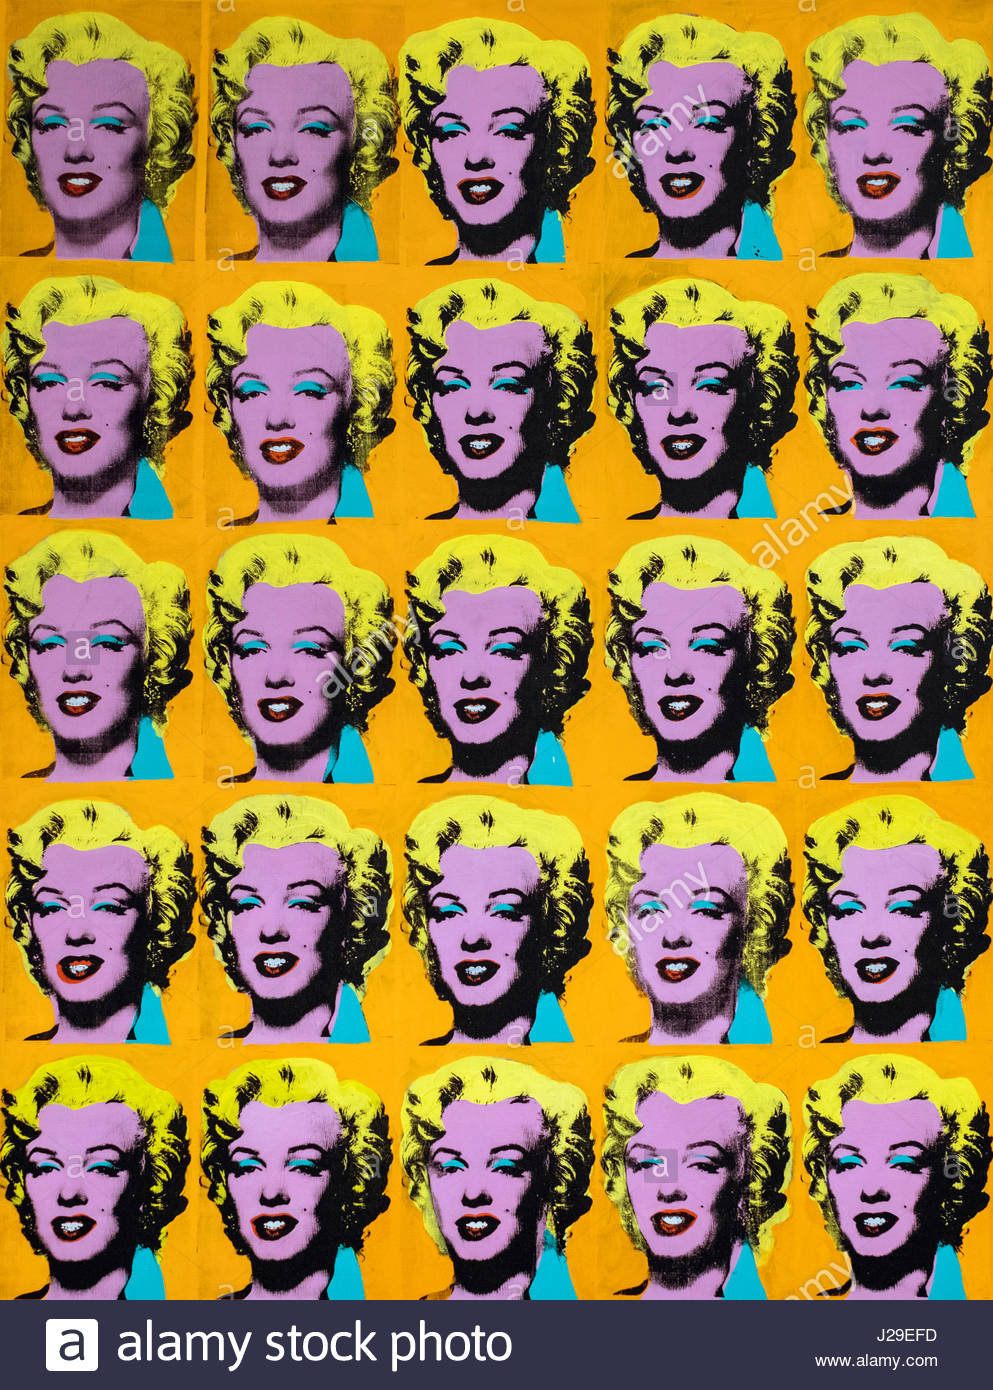 an analysis of andy warhol s gold marilyn monroe Post navigation ← previous andy warhol gold marilyn monroe 1962 analysis essay, written dbq essay, pic of kid doing homework.